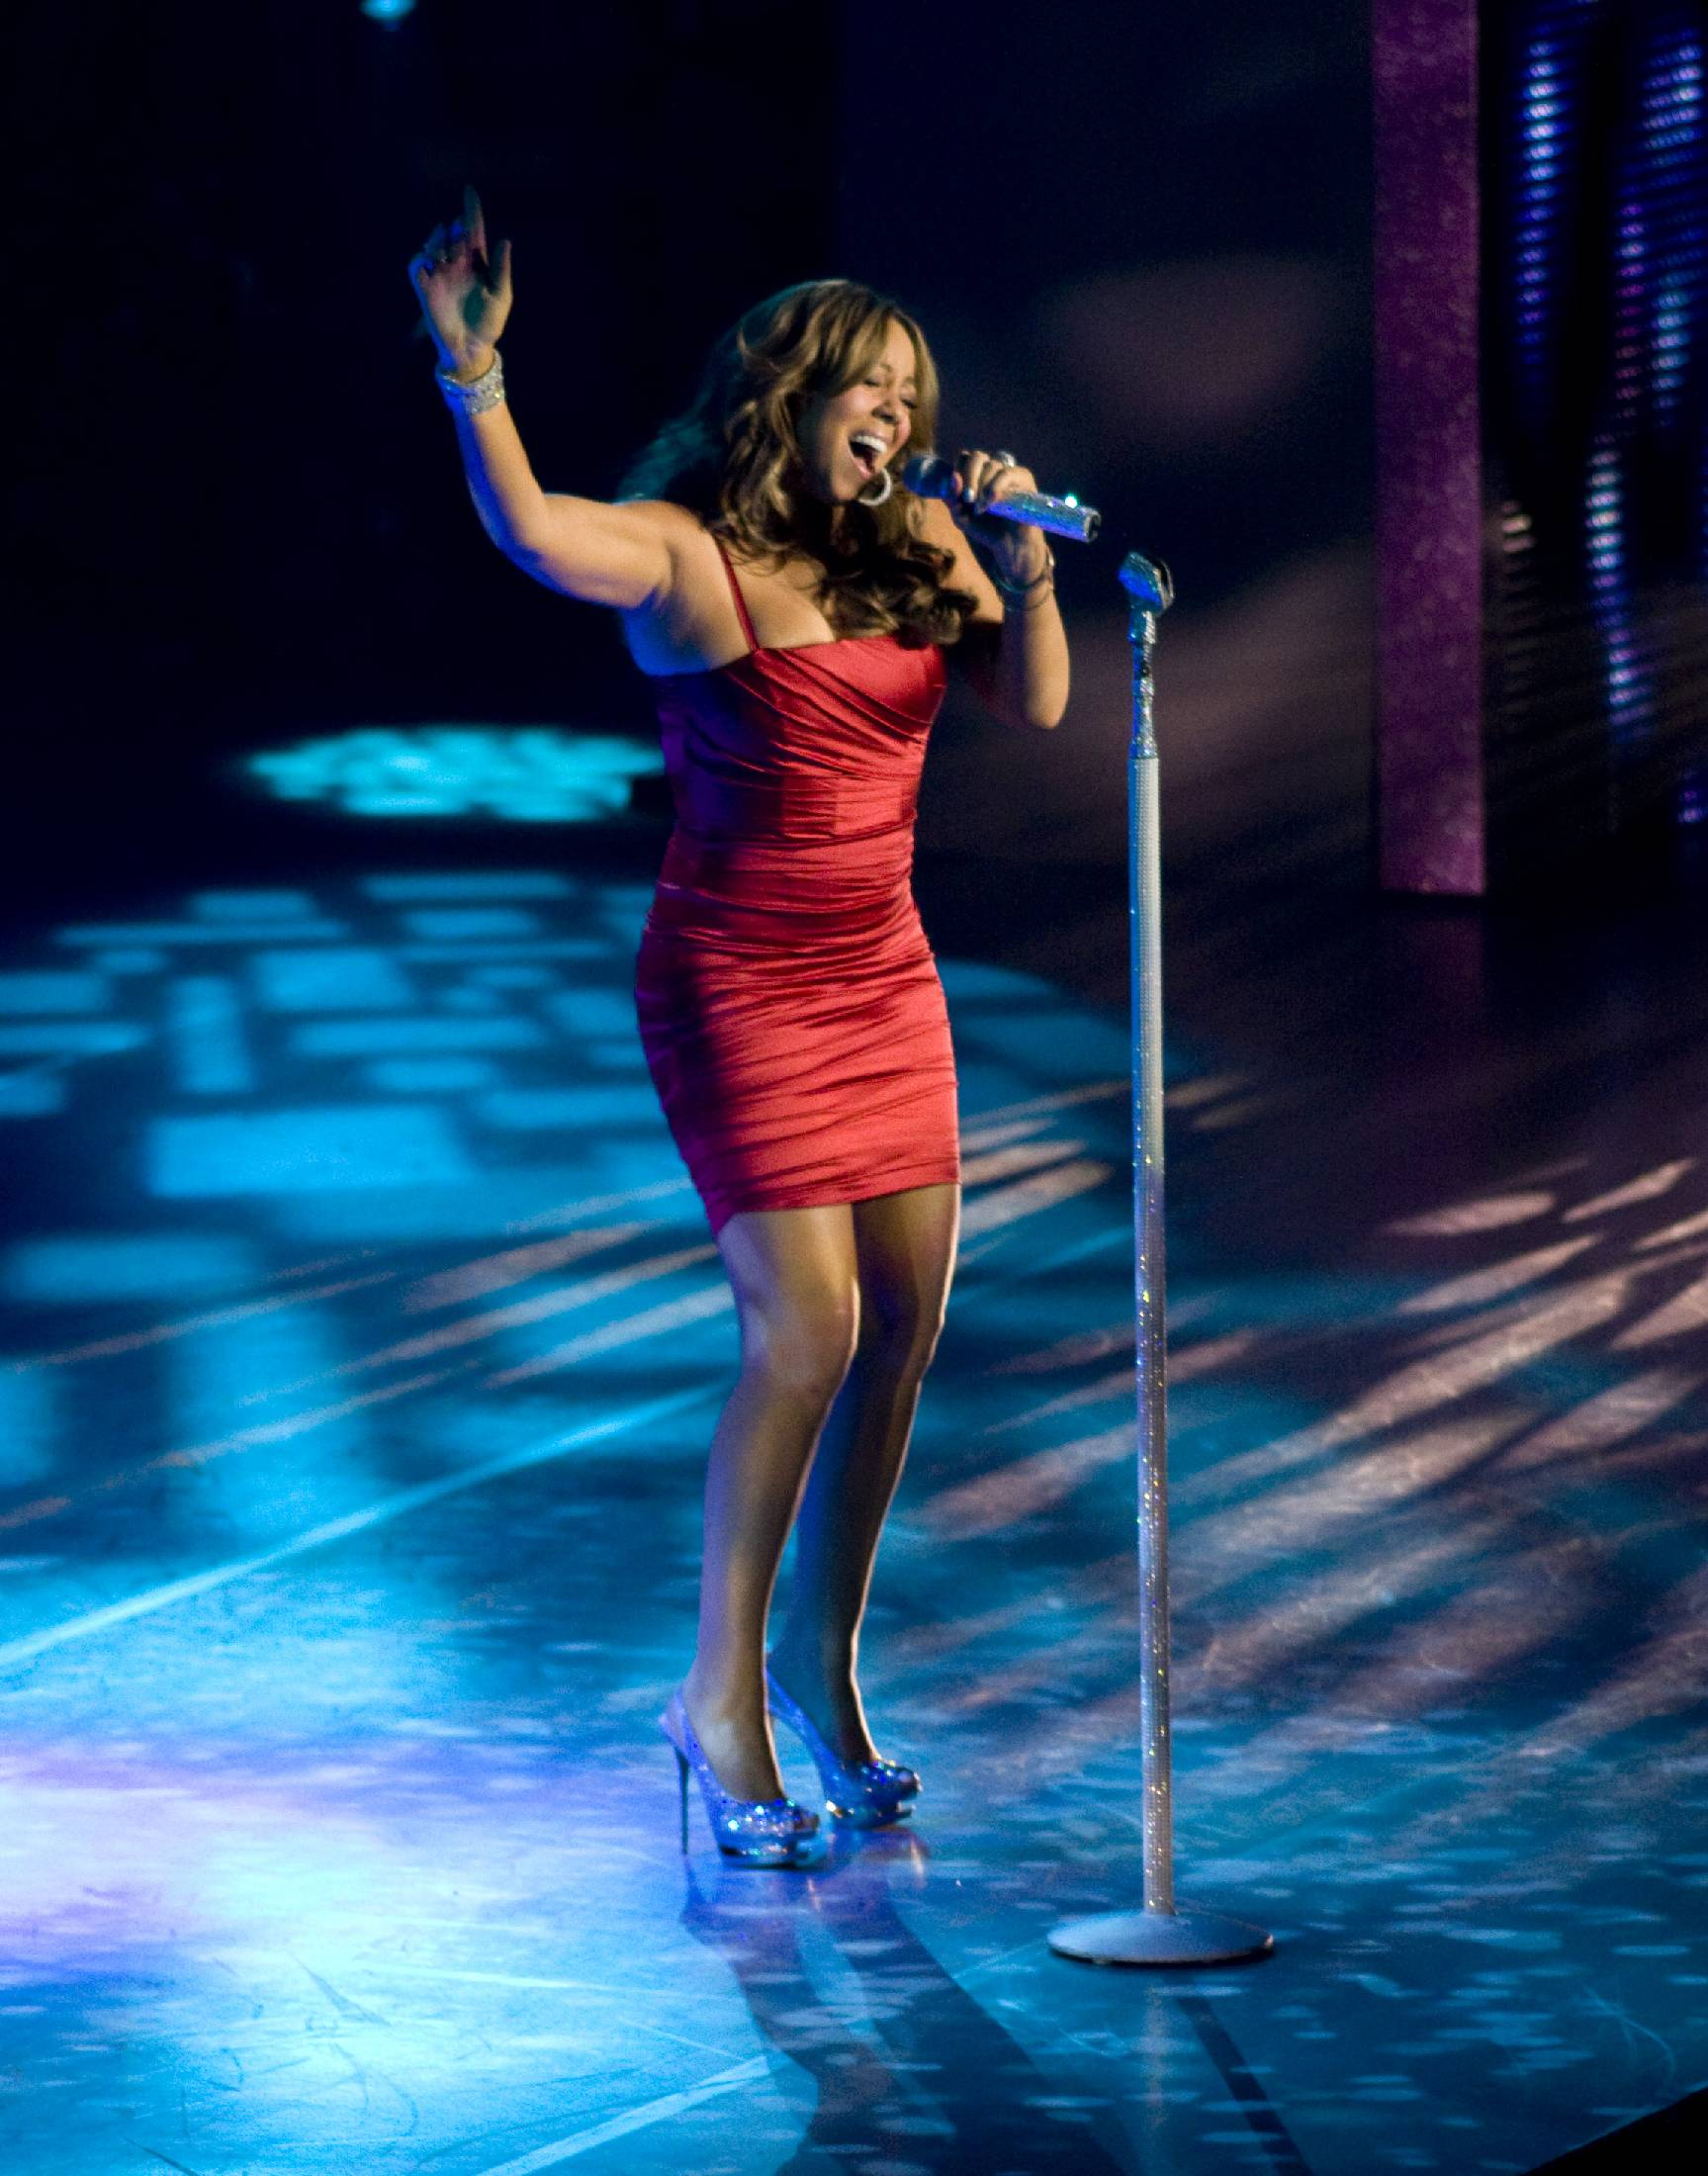 53616_Mariah_Carey_performs_at_Madison_Square_Garden_in_New_York_City-5_122_485lo.jpg